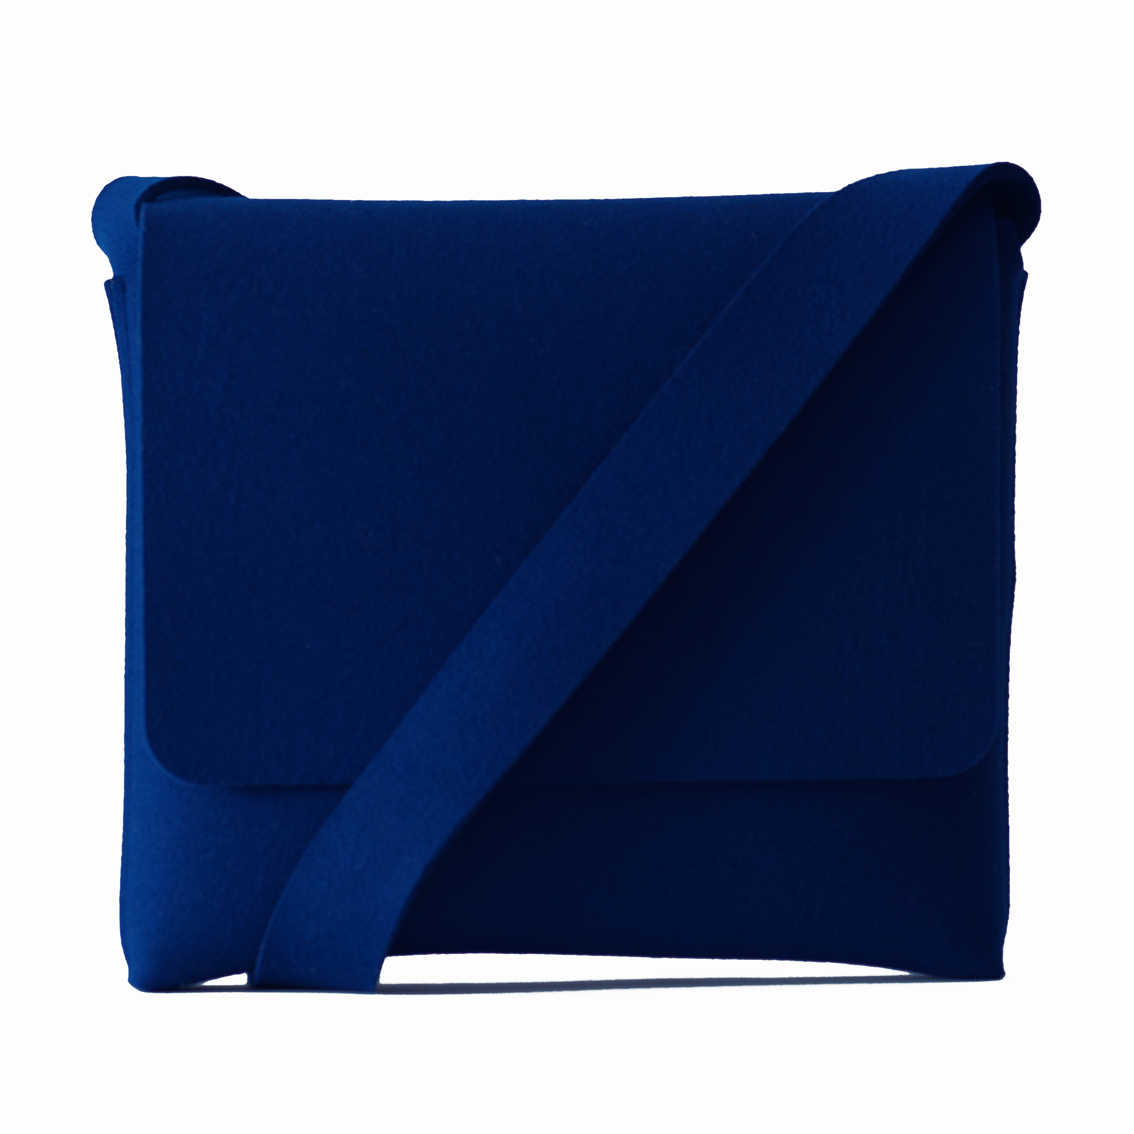 Messenger bag - felt - blue